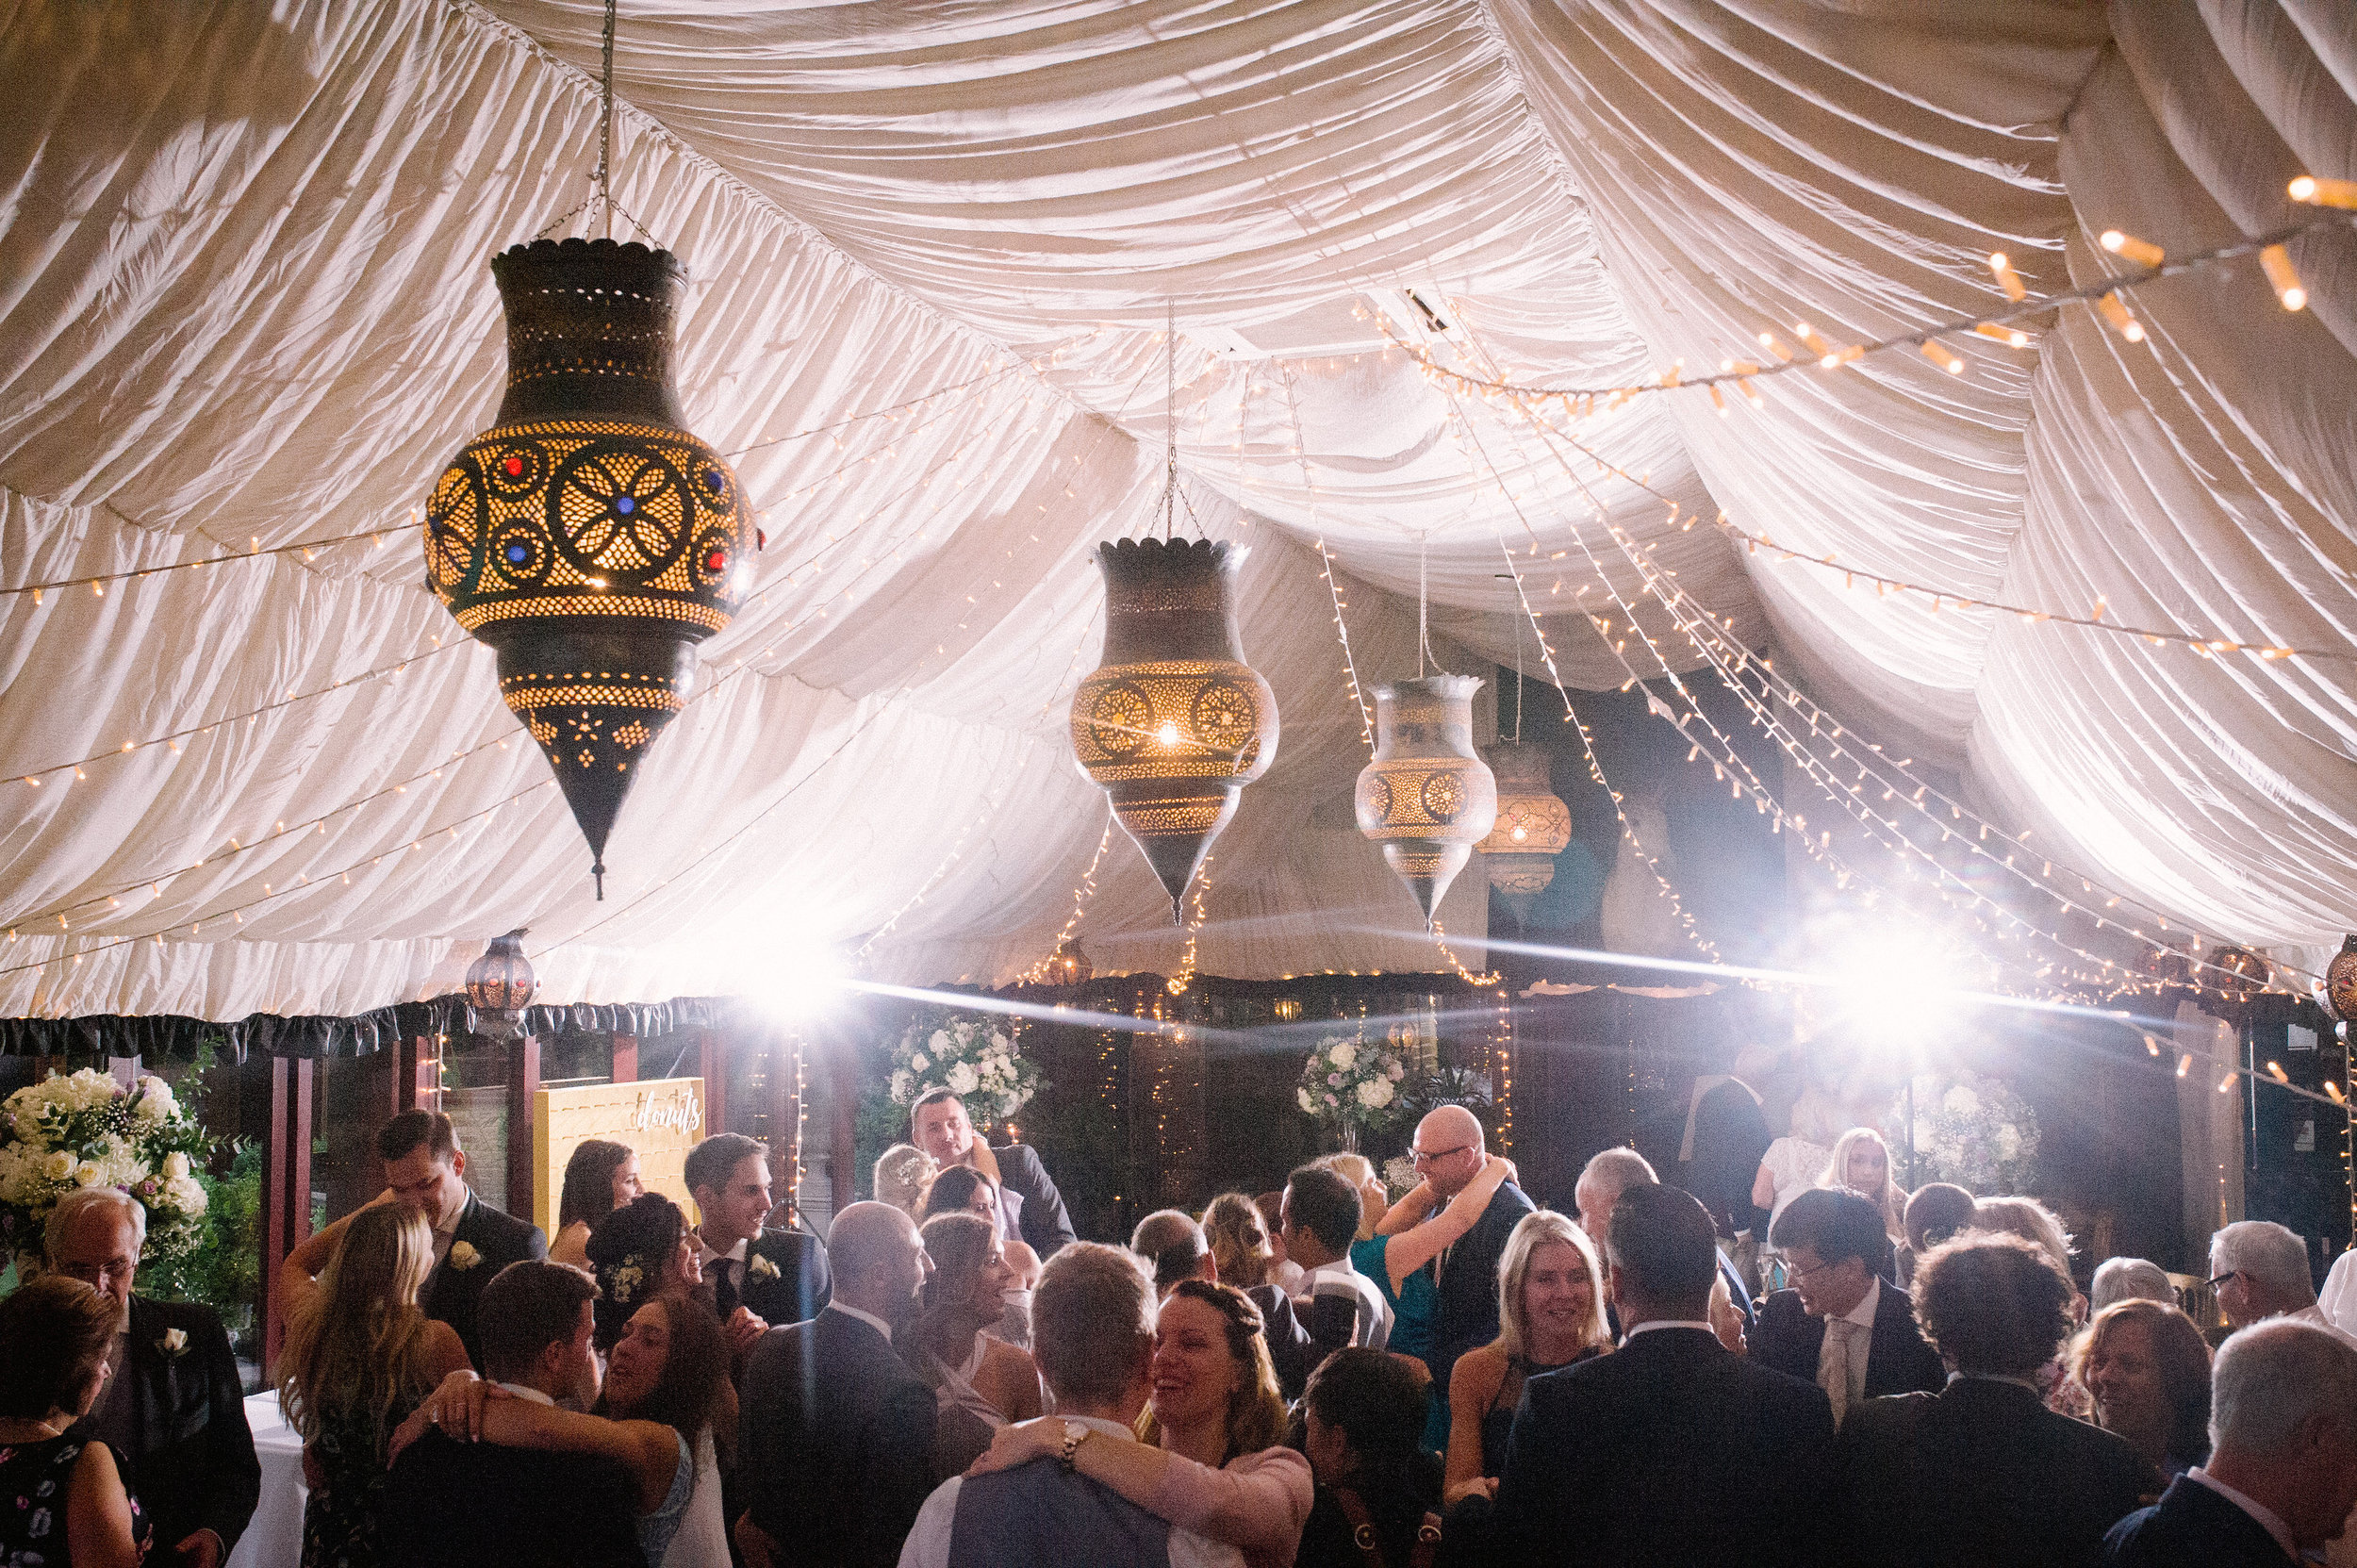 Choosing a marquee reception is perfect for a large guest list